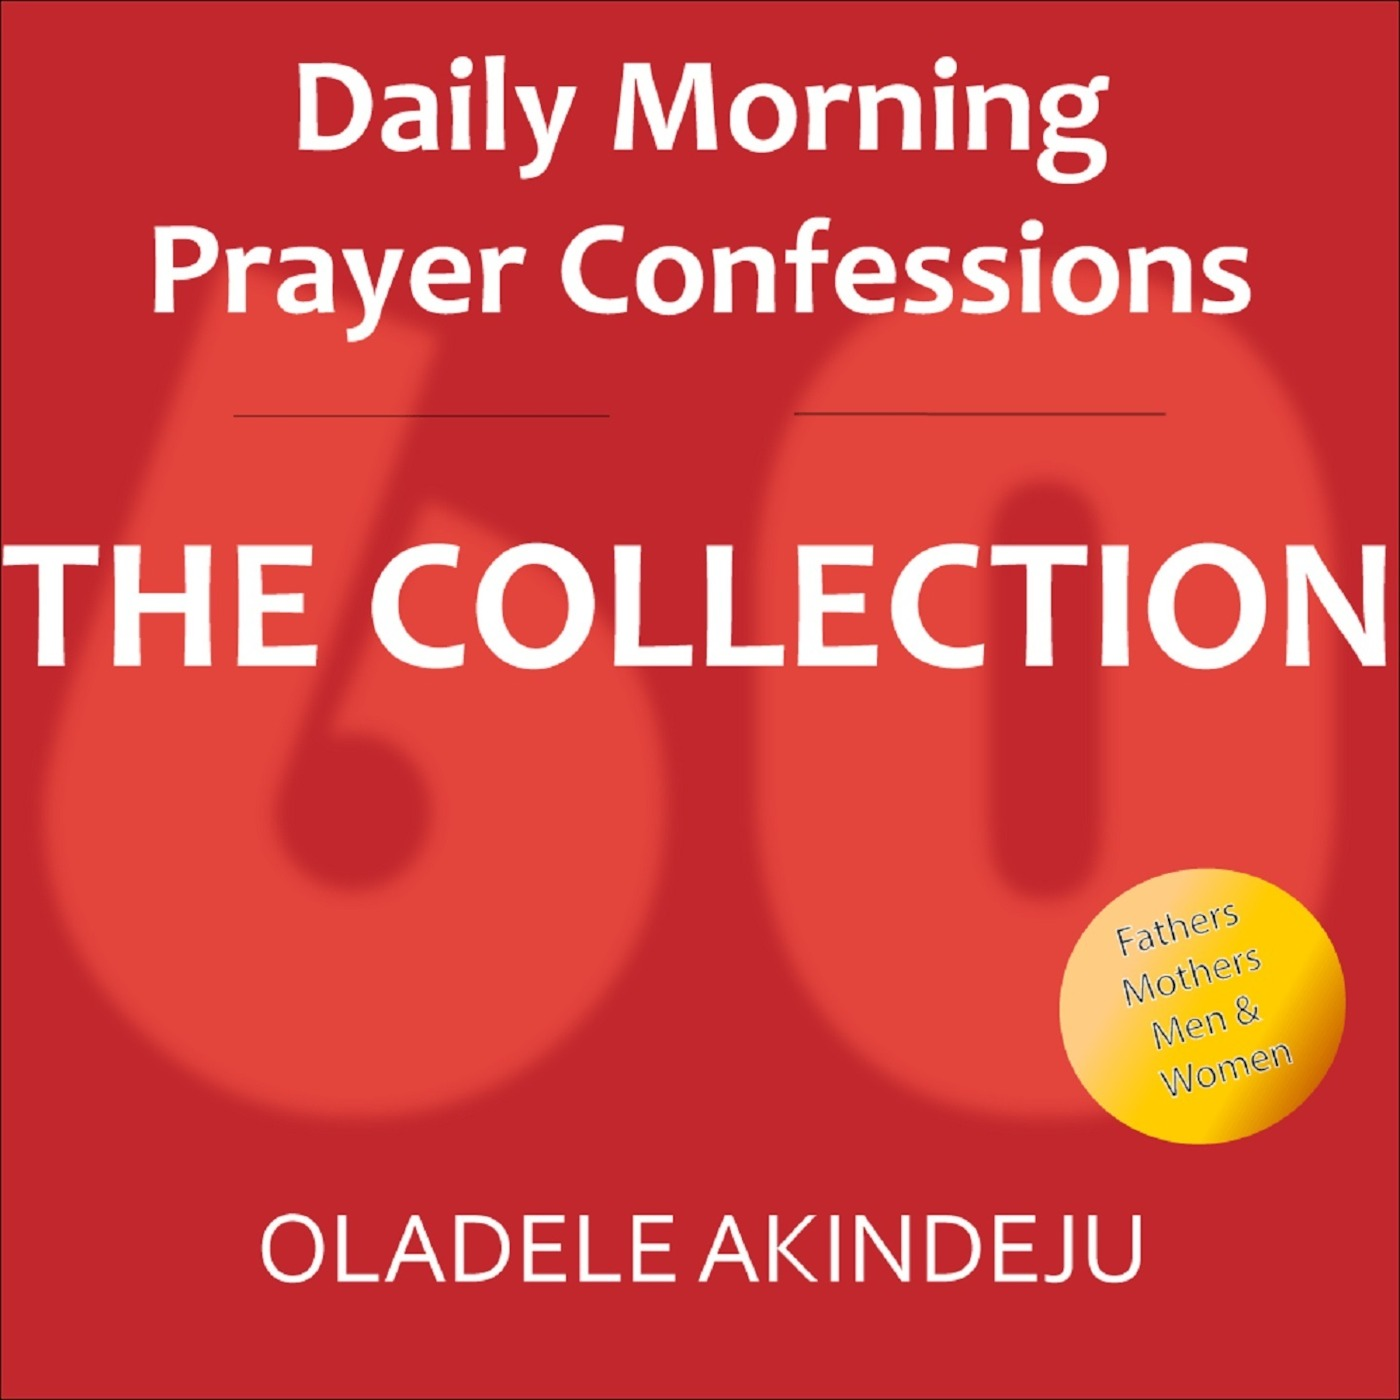 Daily Morning Prayer Confessions Podcast